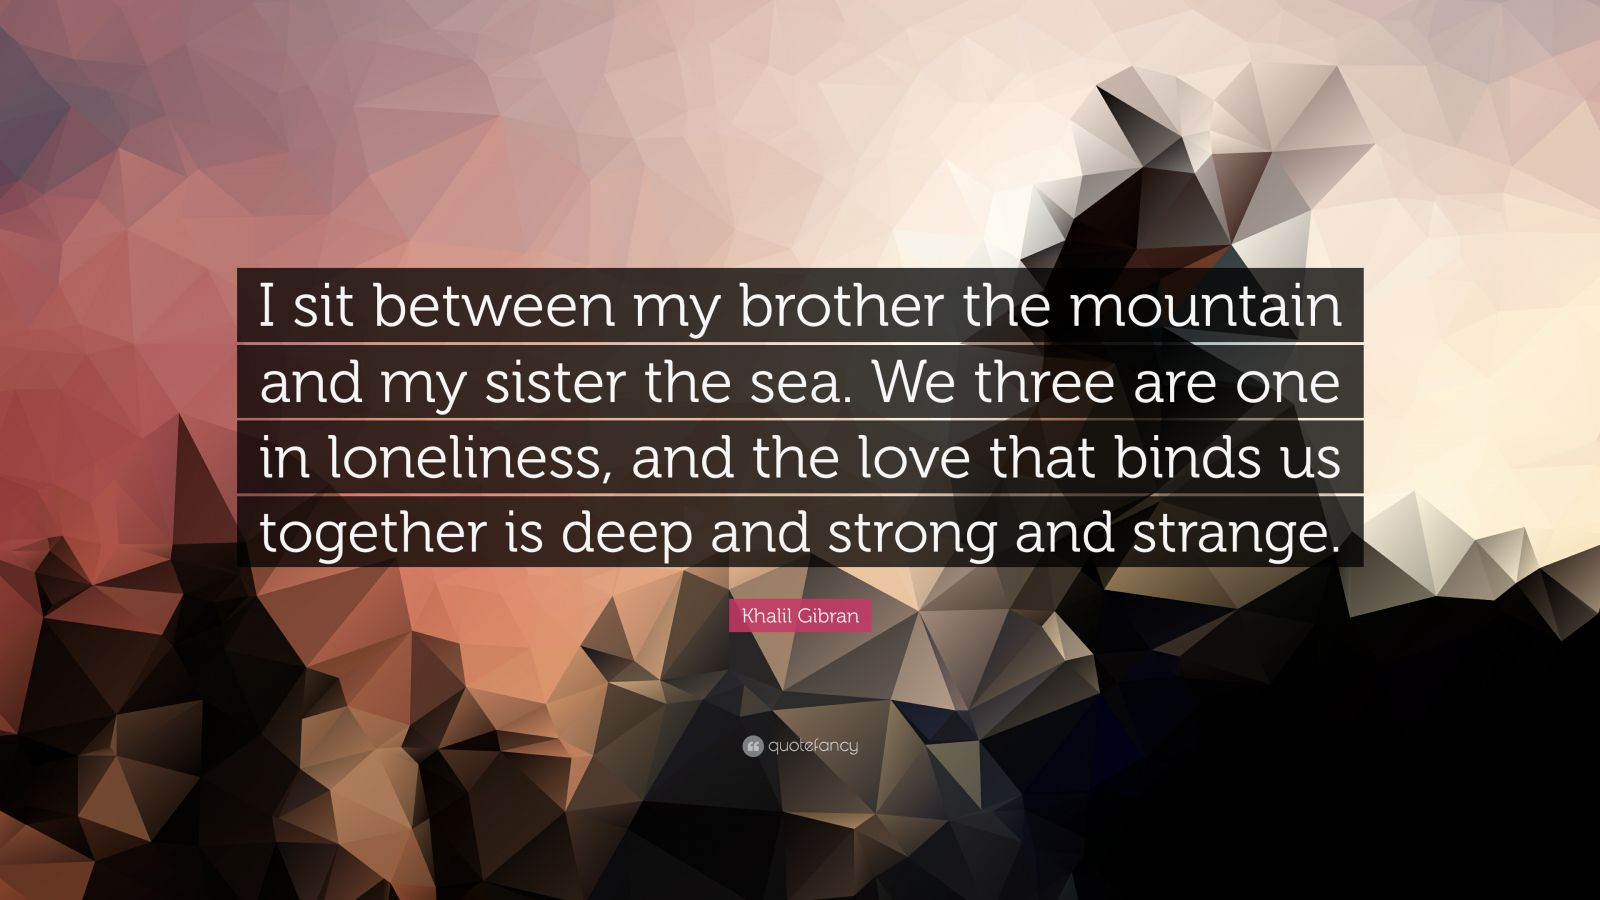 brother and sister quotes wallpapers - photo #30